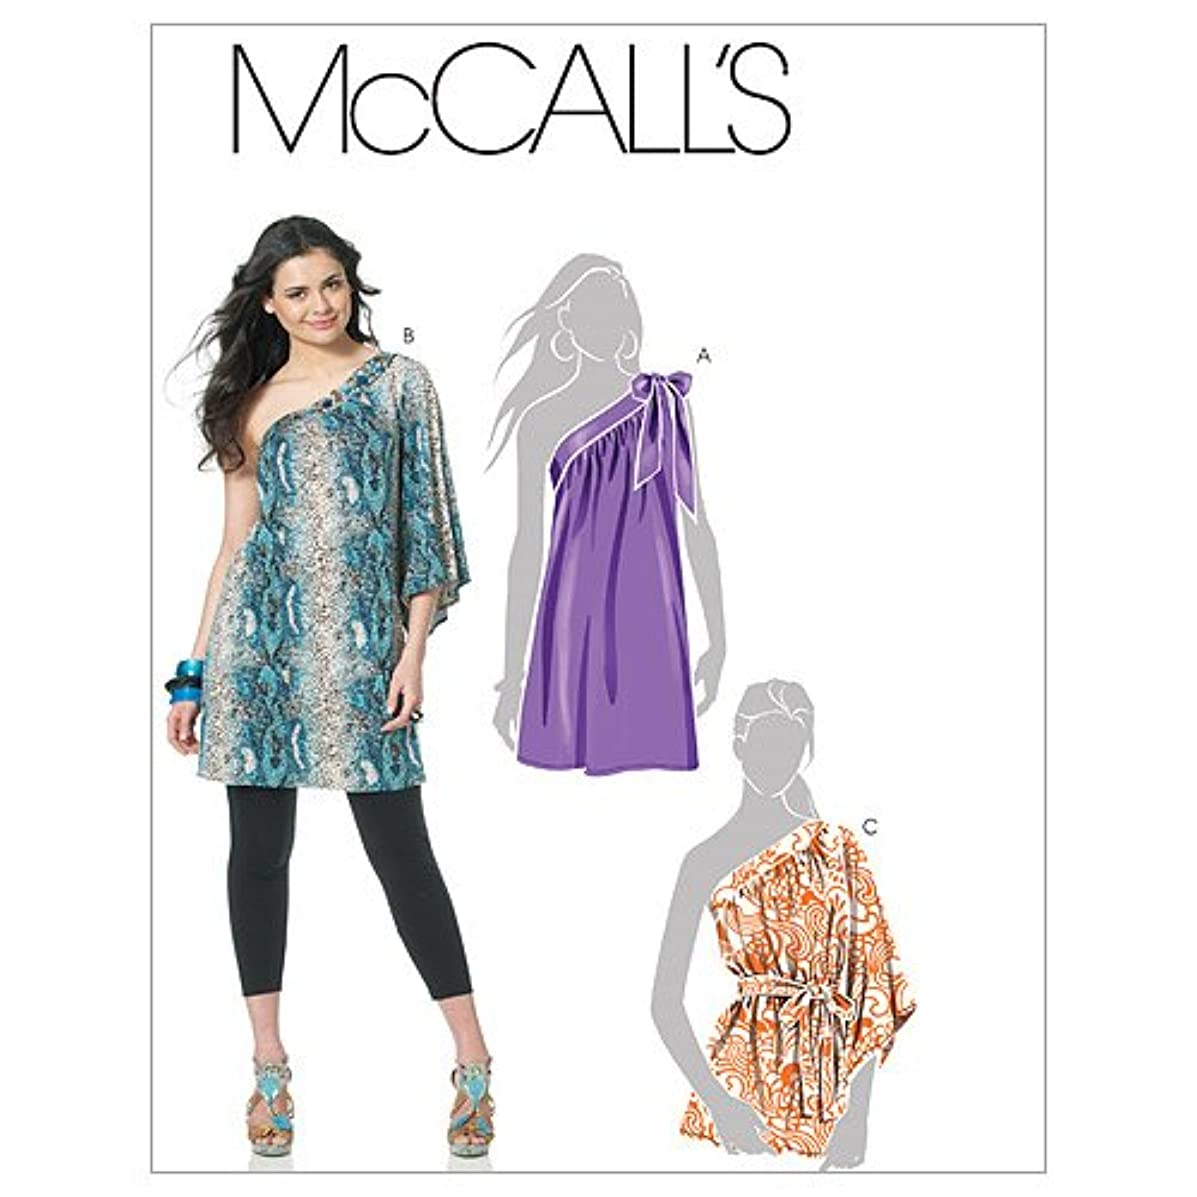 McCall's Patterns M6118 Misses' Tunics and Sash, Size AX5 (4-6-8-10-12)